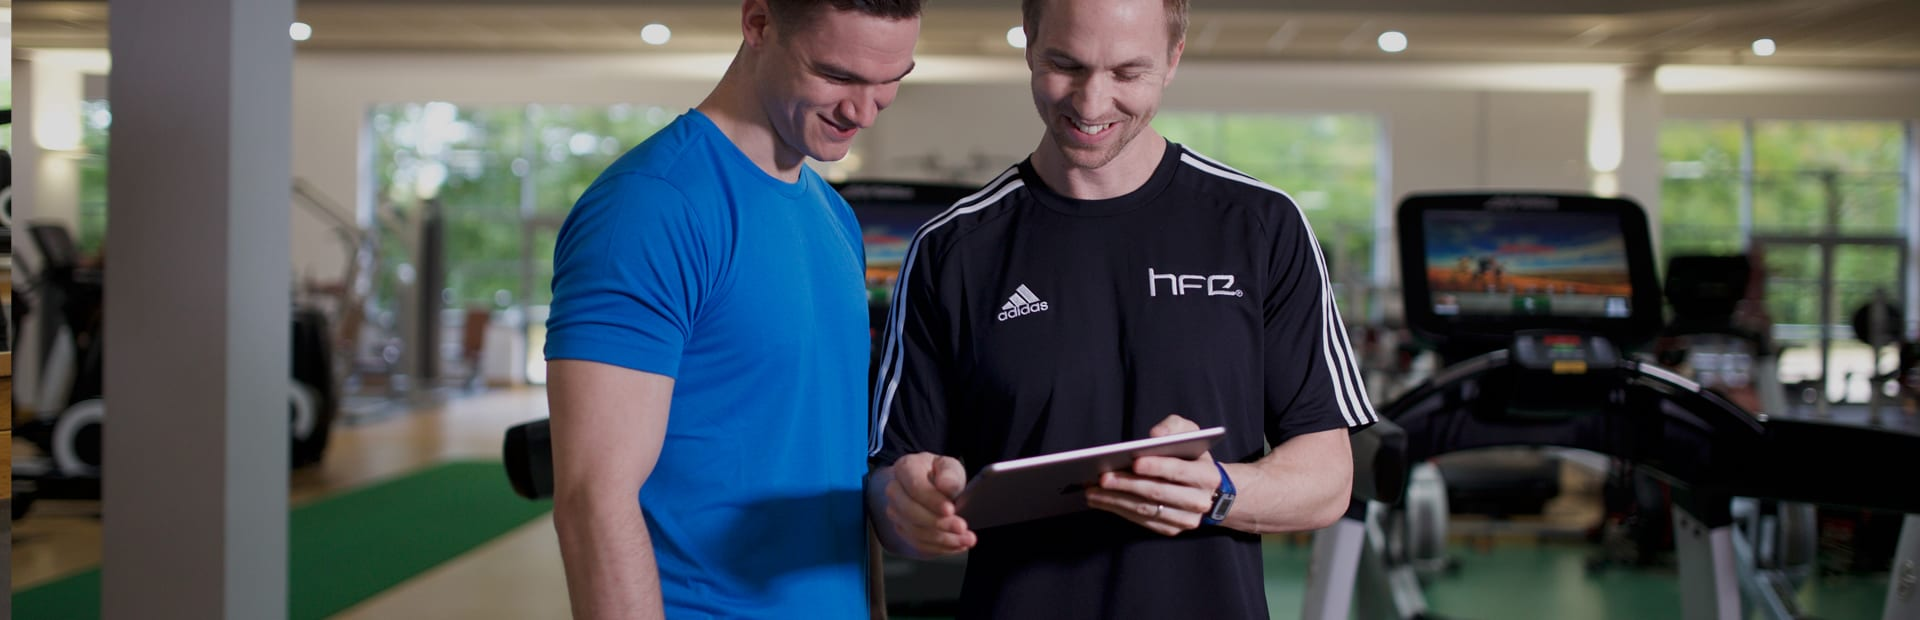 HFE tutor showing a student a digital version of a manual